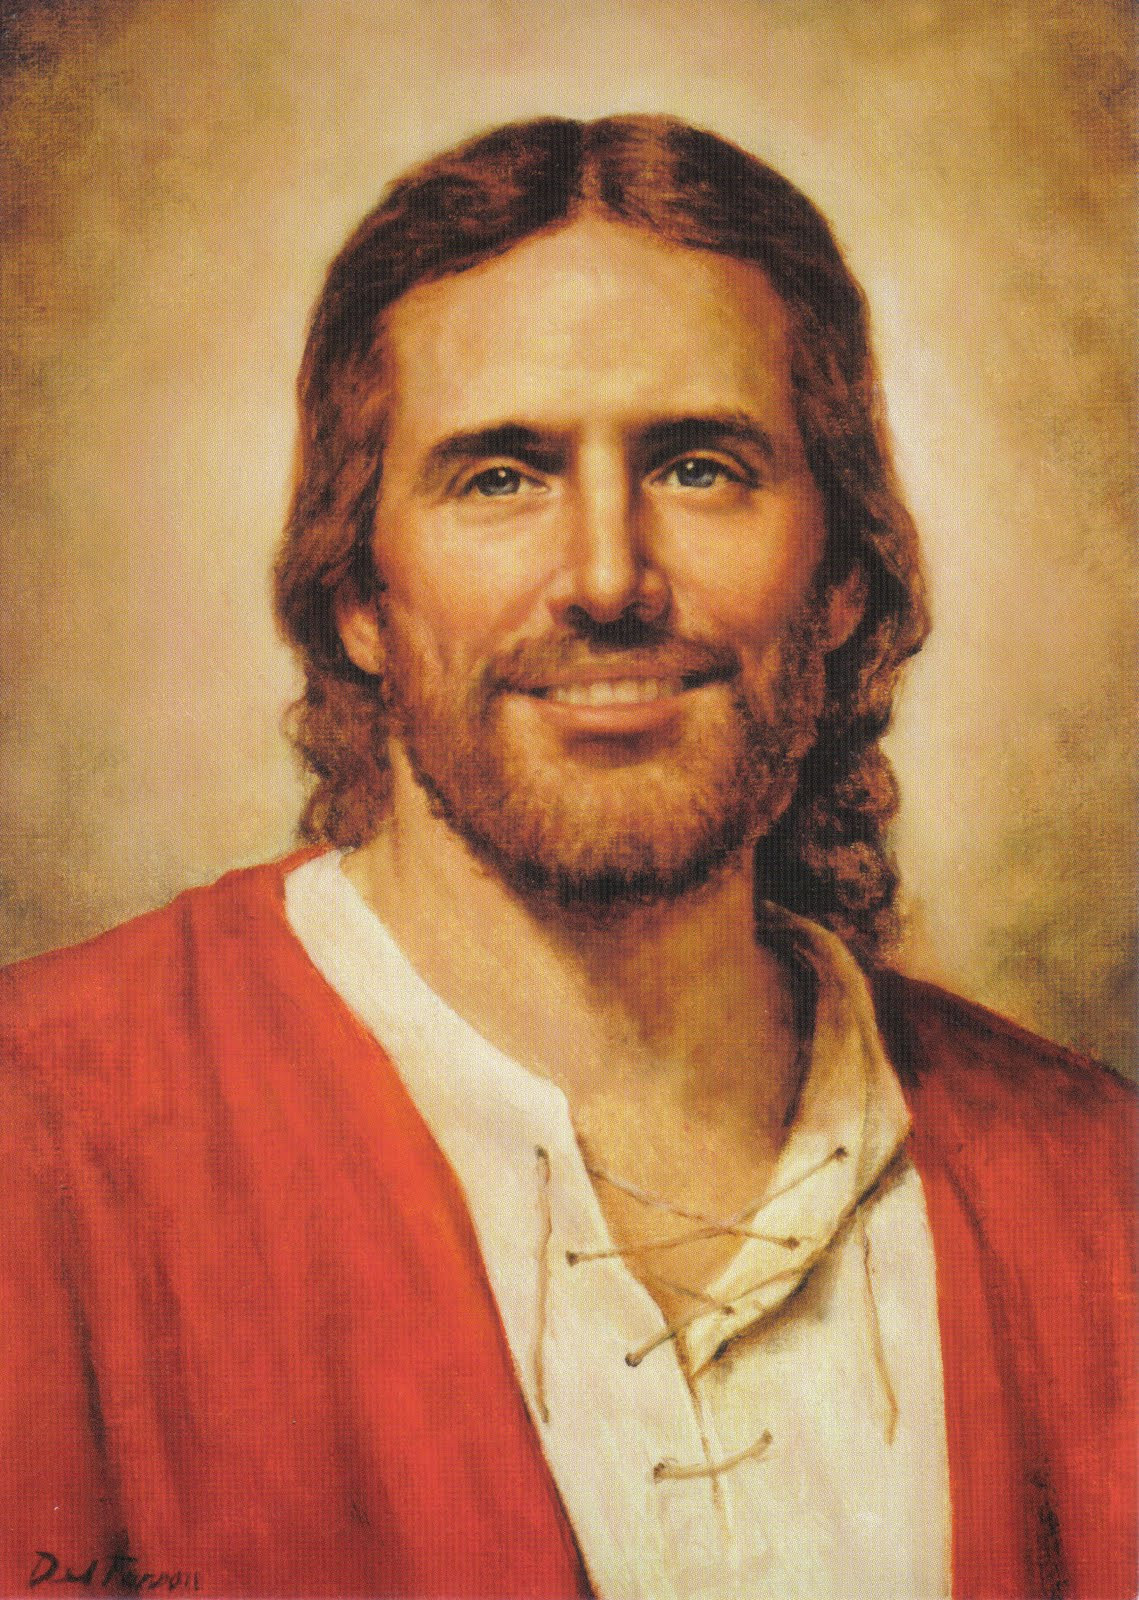 Beautiful-Jesus-Picture-Smiling-Portrait-Painting ... Pictures Of Jesus